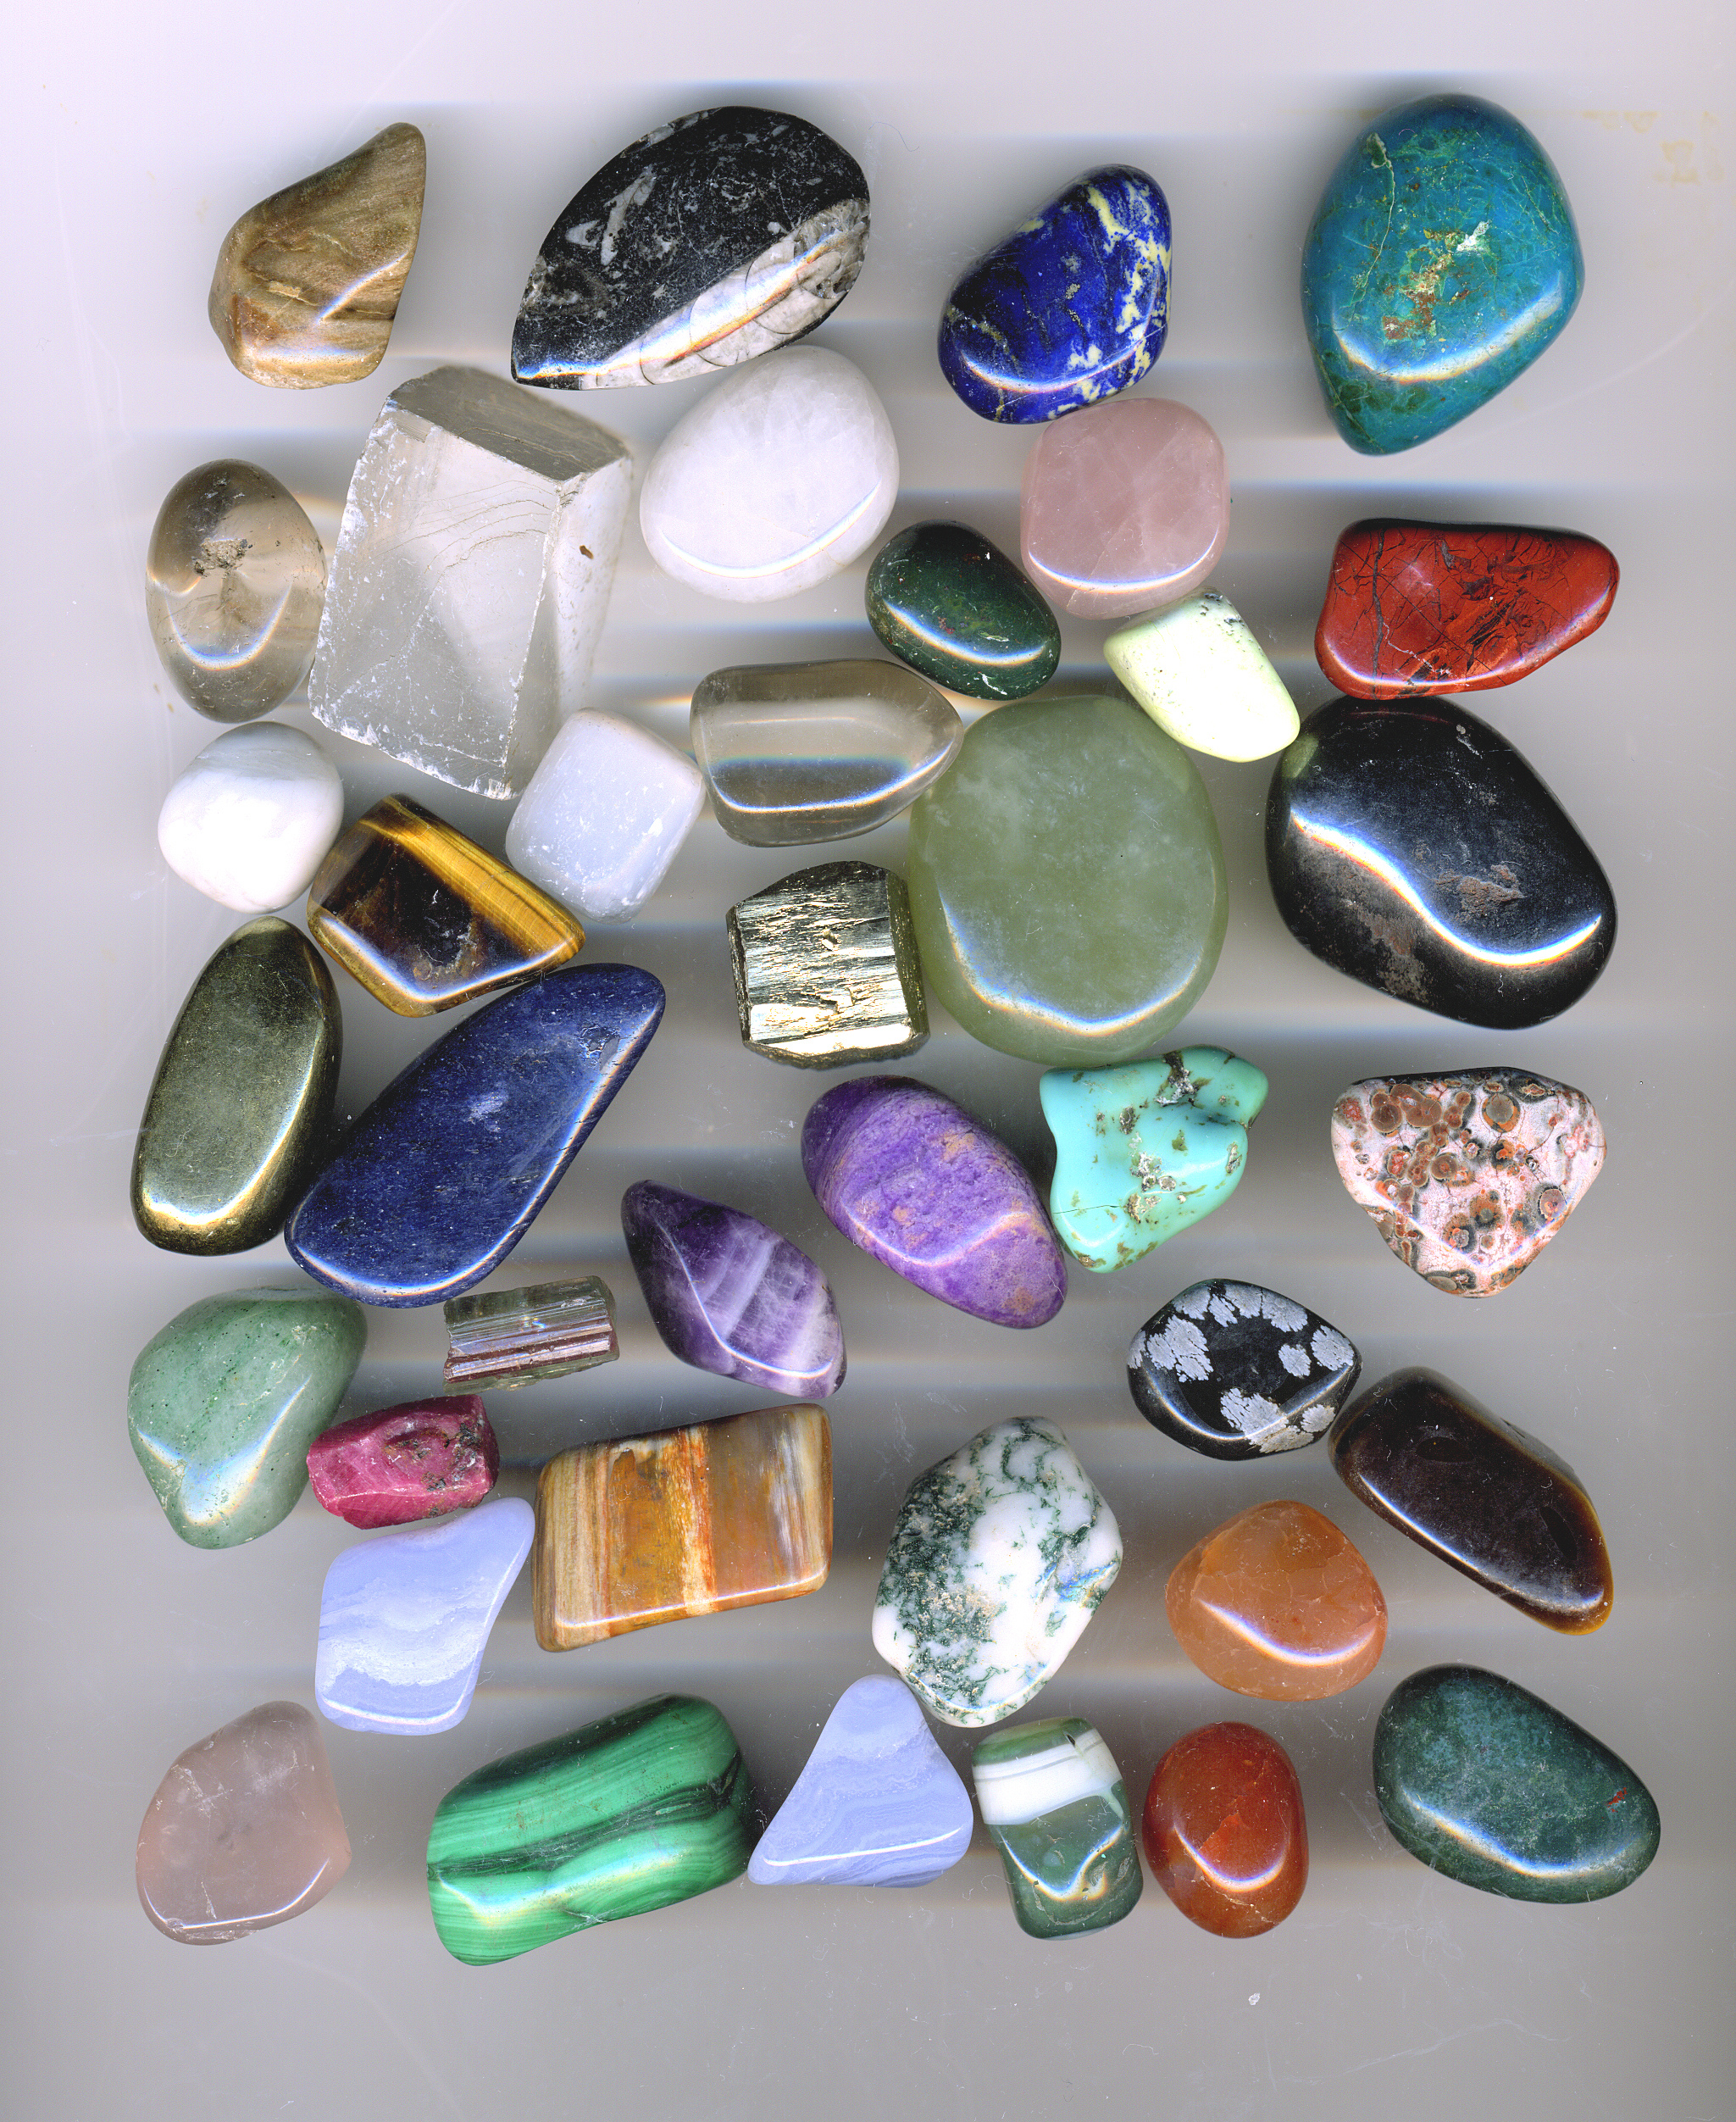 How to Clean Gemstones – Care Guide Part II